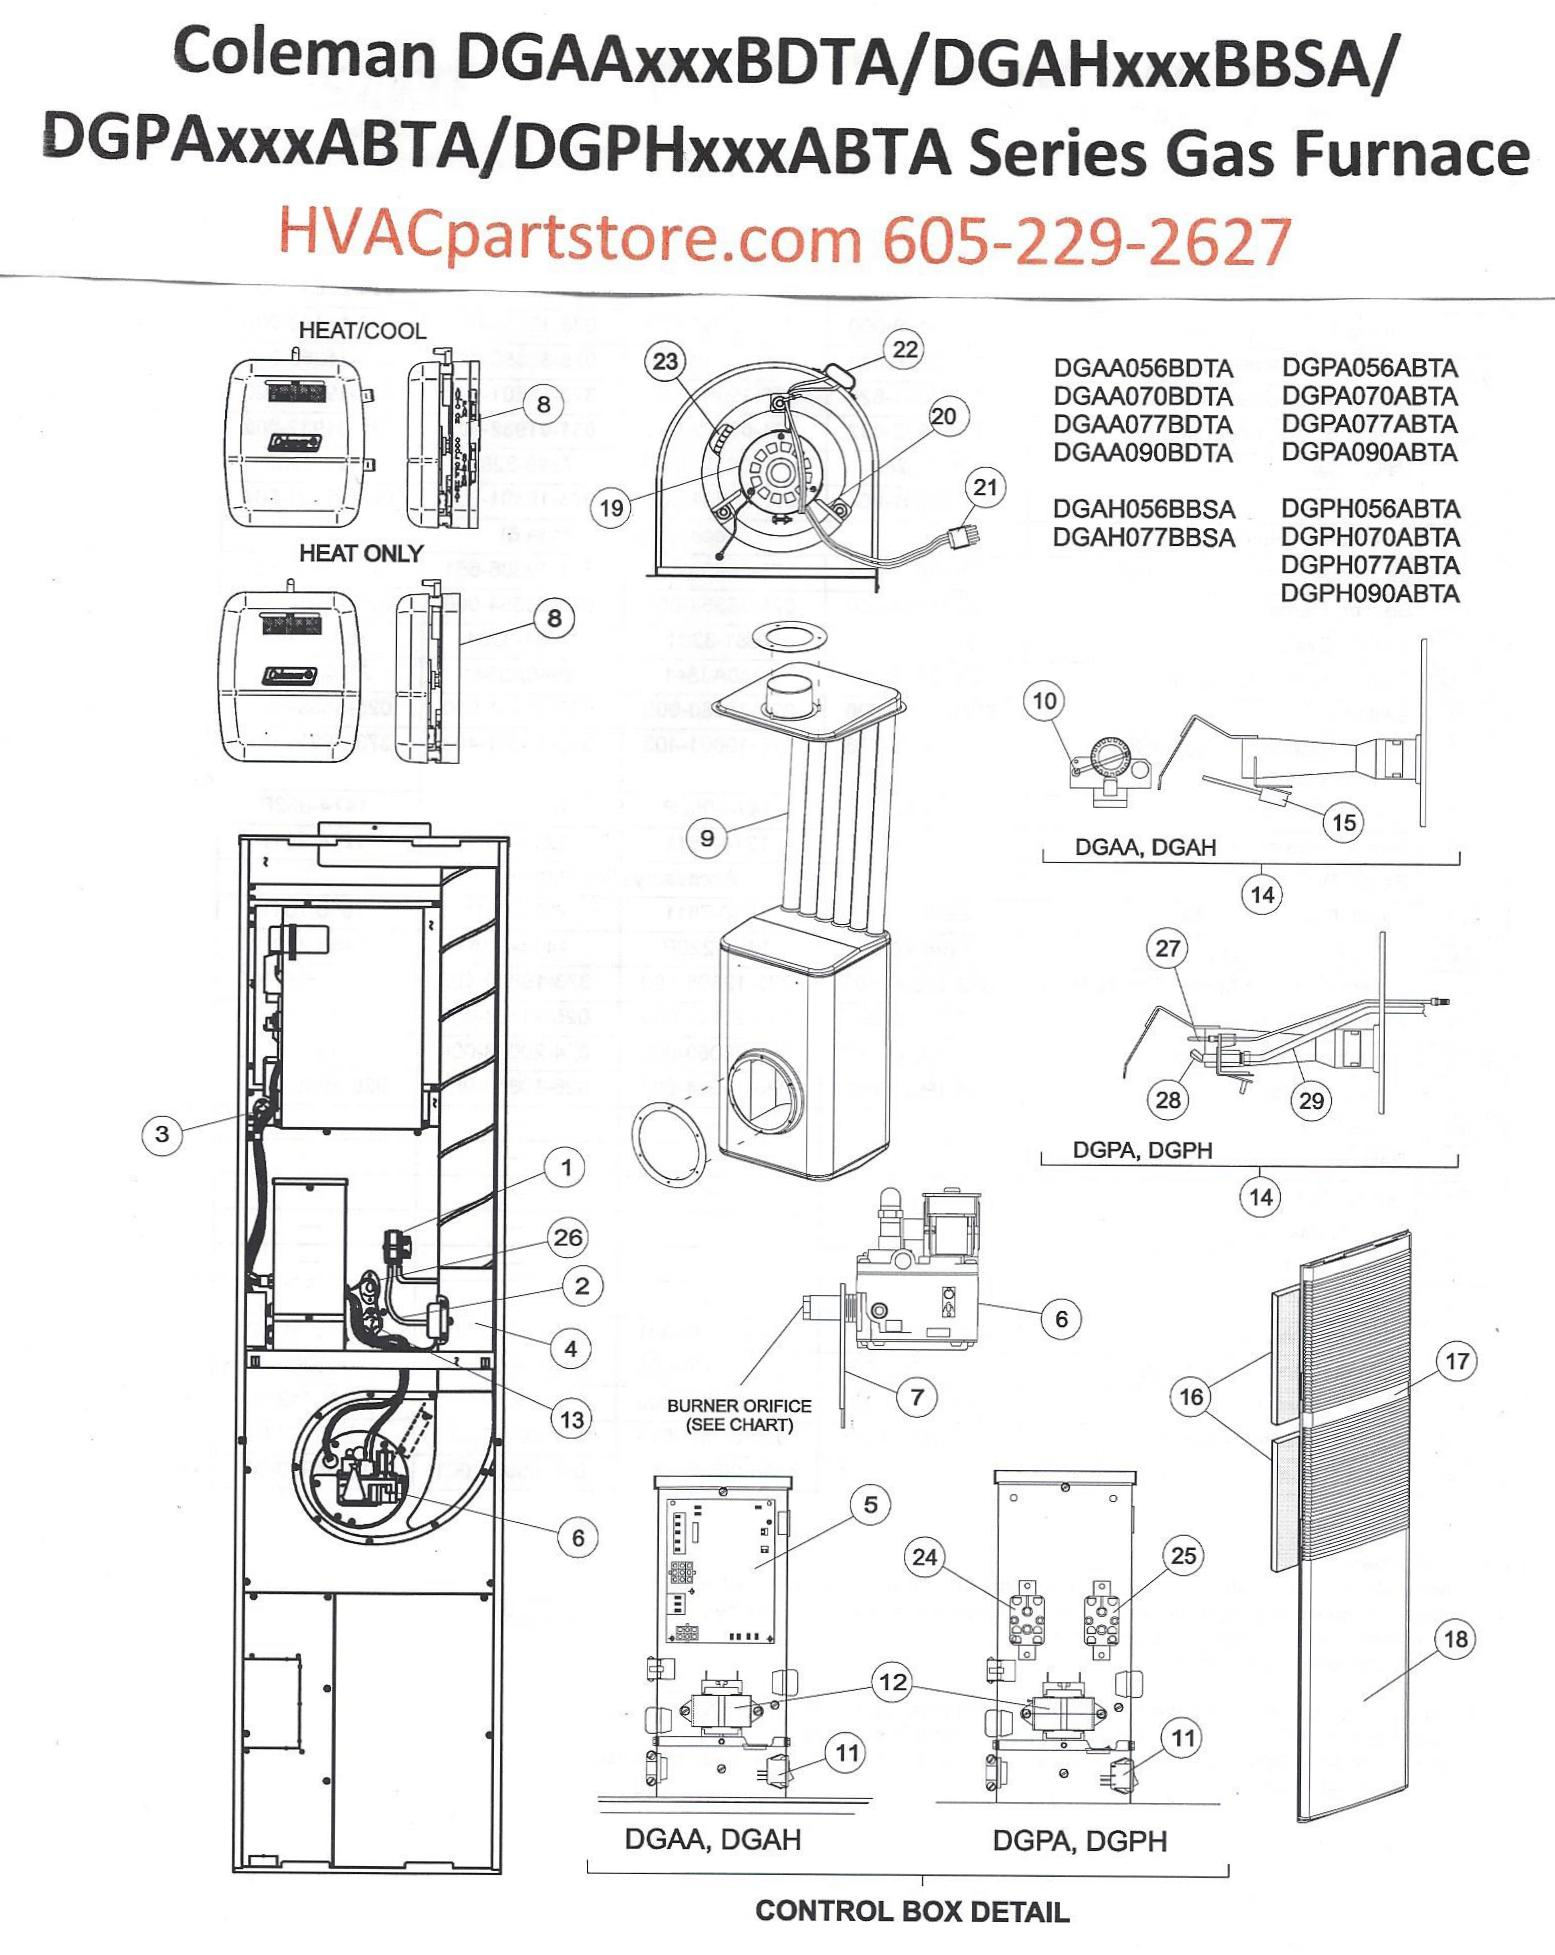 White Rodgers Thermostat Model 1e78 140 Wiring Diagram : Dgph abta coleman gas furnace parts hvacpartstore